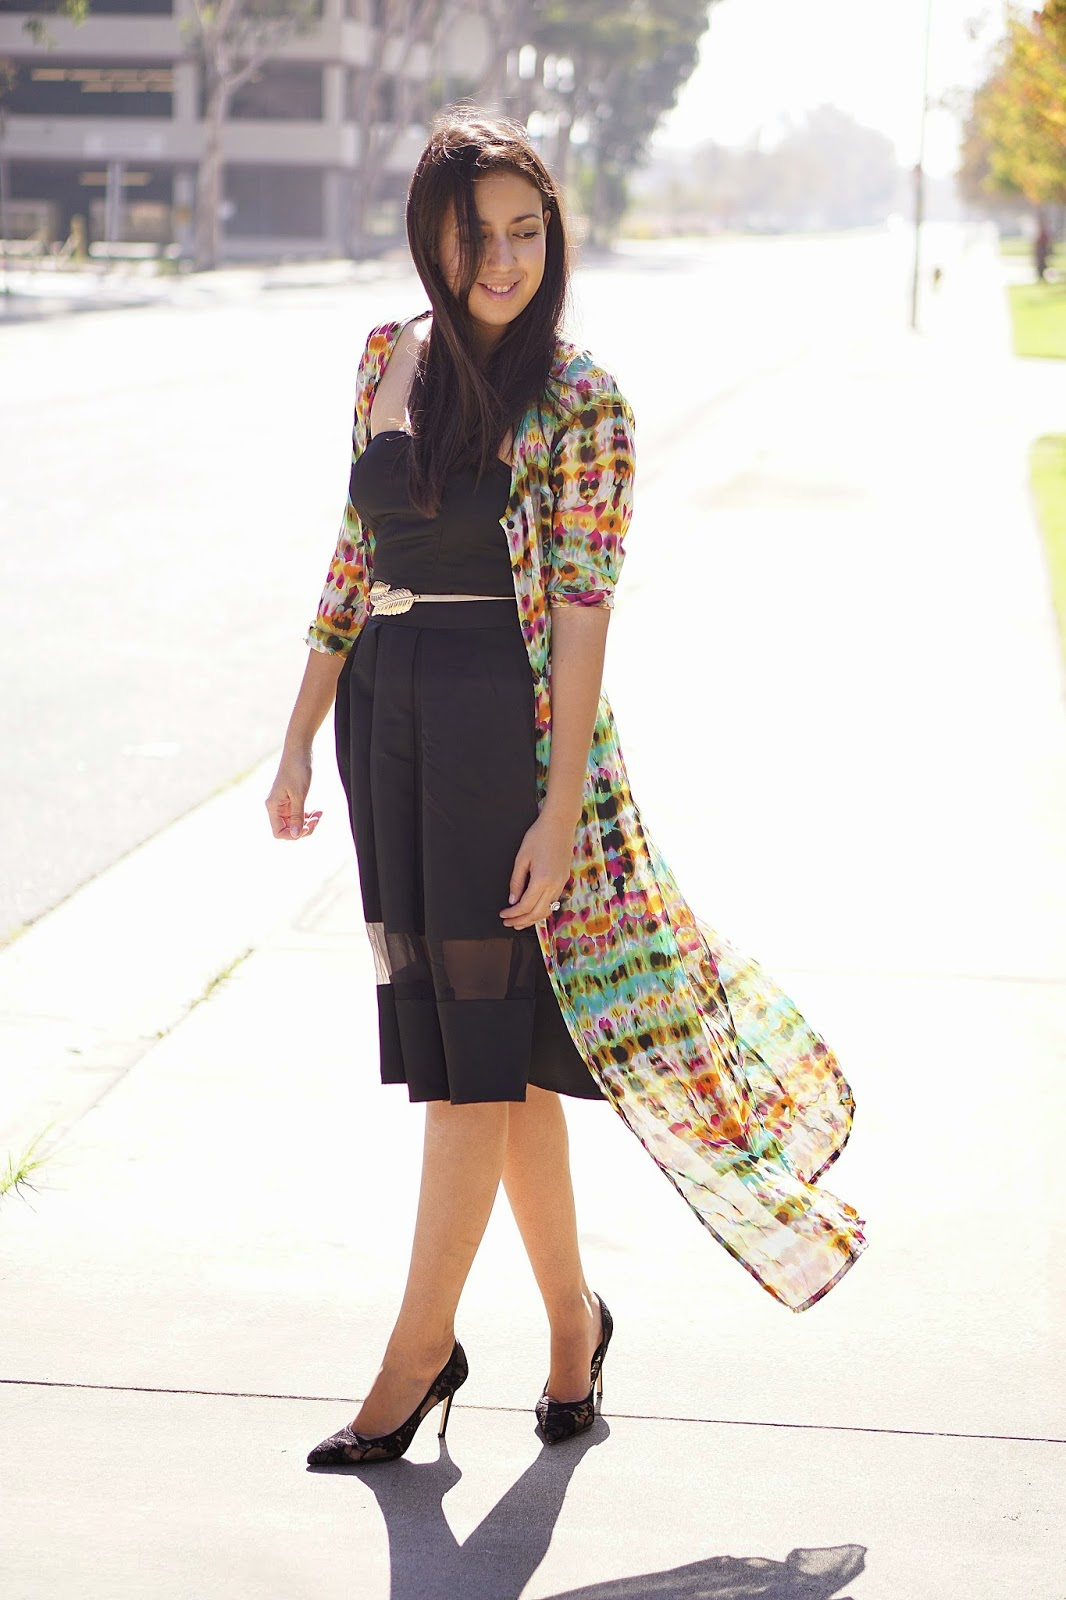 Lookbook, Latina Fashion Blogger, LA Fashion Blogger, Lookbook Store Review, Lookbook Store Maxi Cardigan, Multicolored Maxi Cardigan, Black Express Dress, Black Dress, Lace Heels, Shoemint Heels, Spring Inspiration,